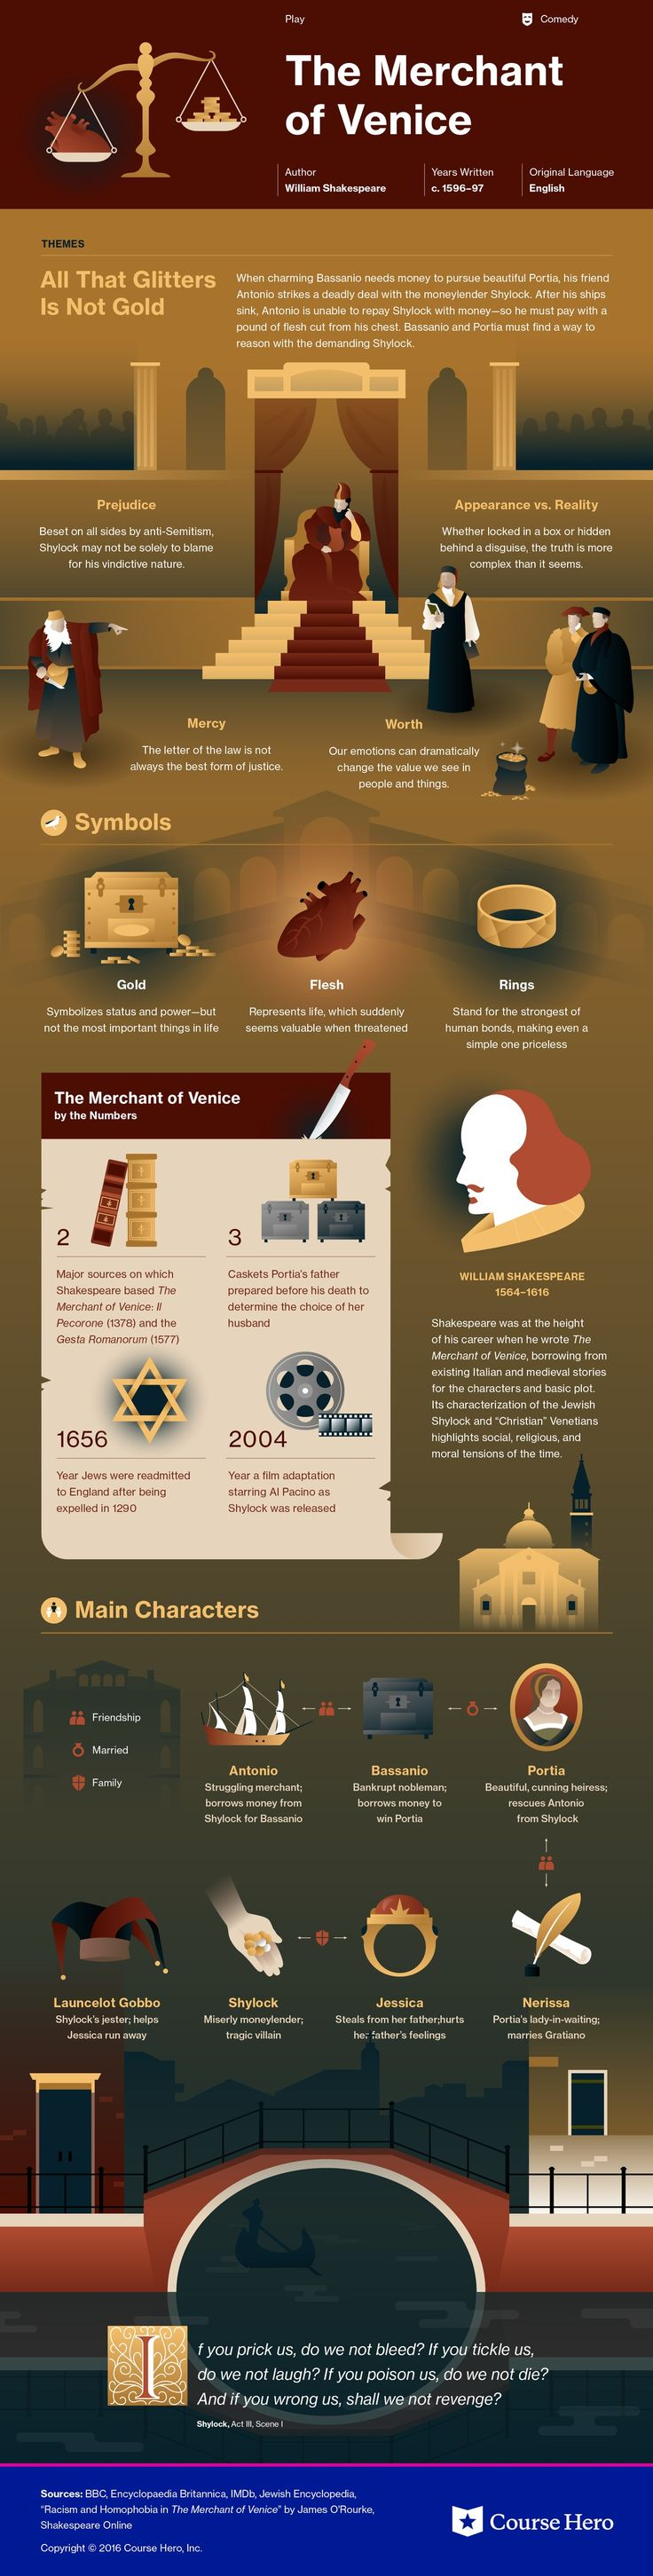 meilleures id eacute es agrave propos de the merchant of venice sur the merchant of venice infographic